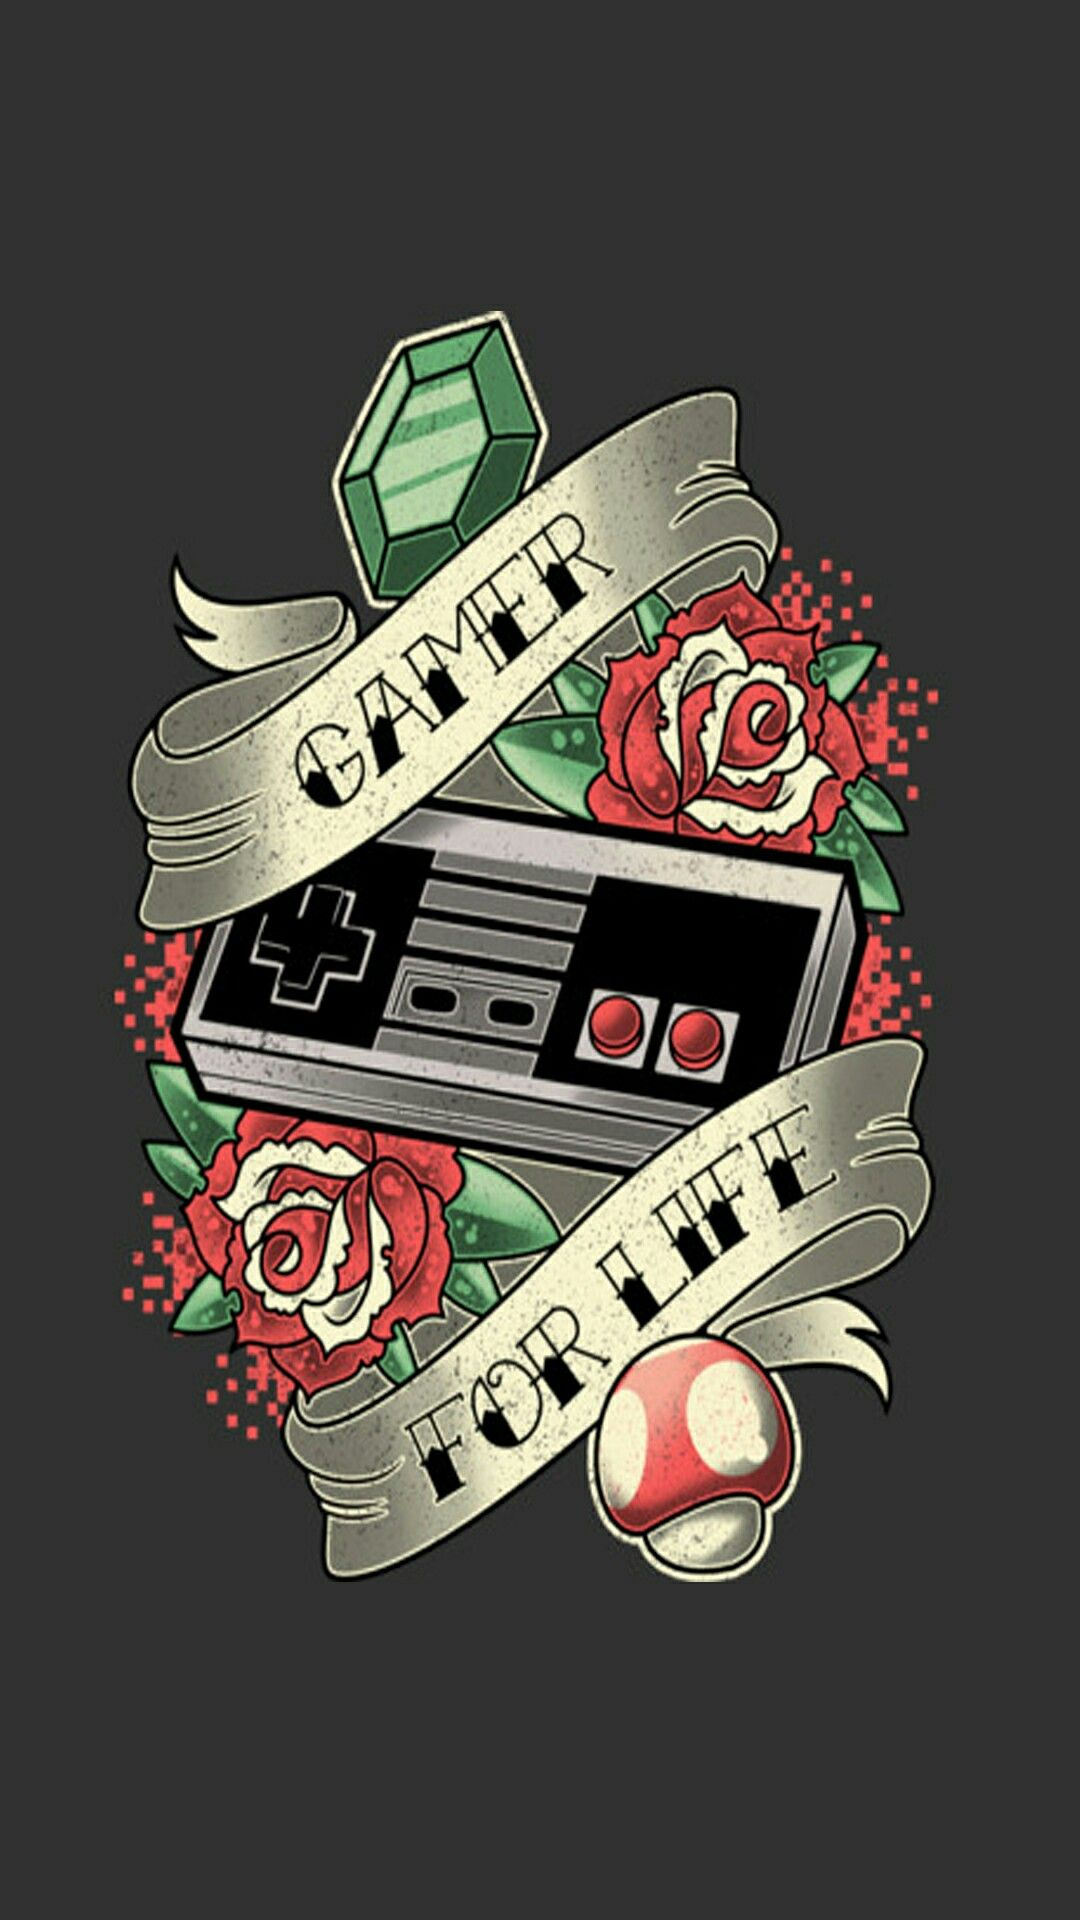 Gamer for life by Mrz_Hyde on ZEDGE